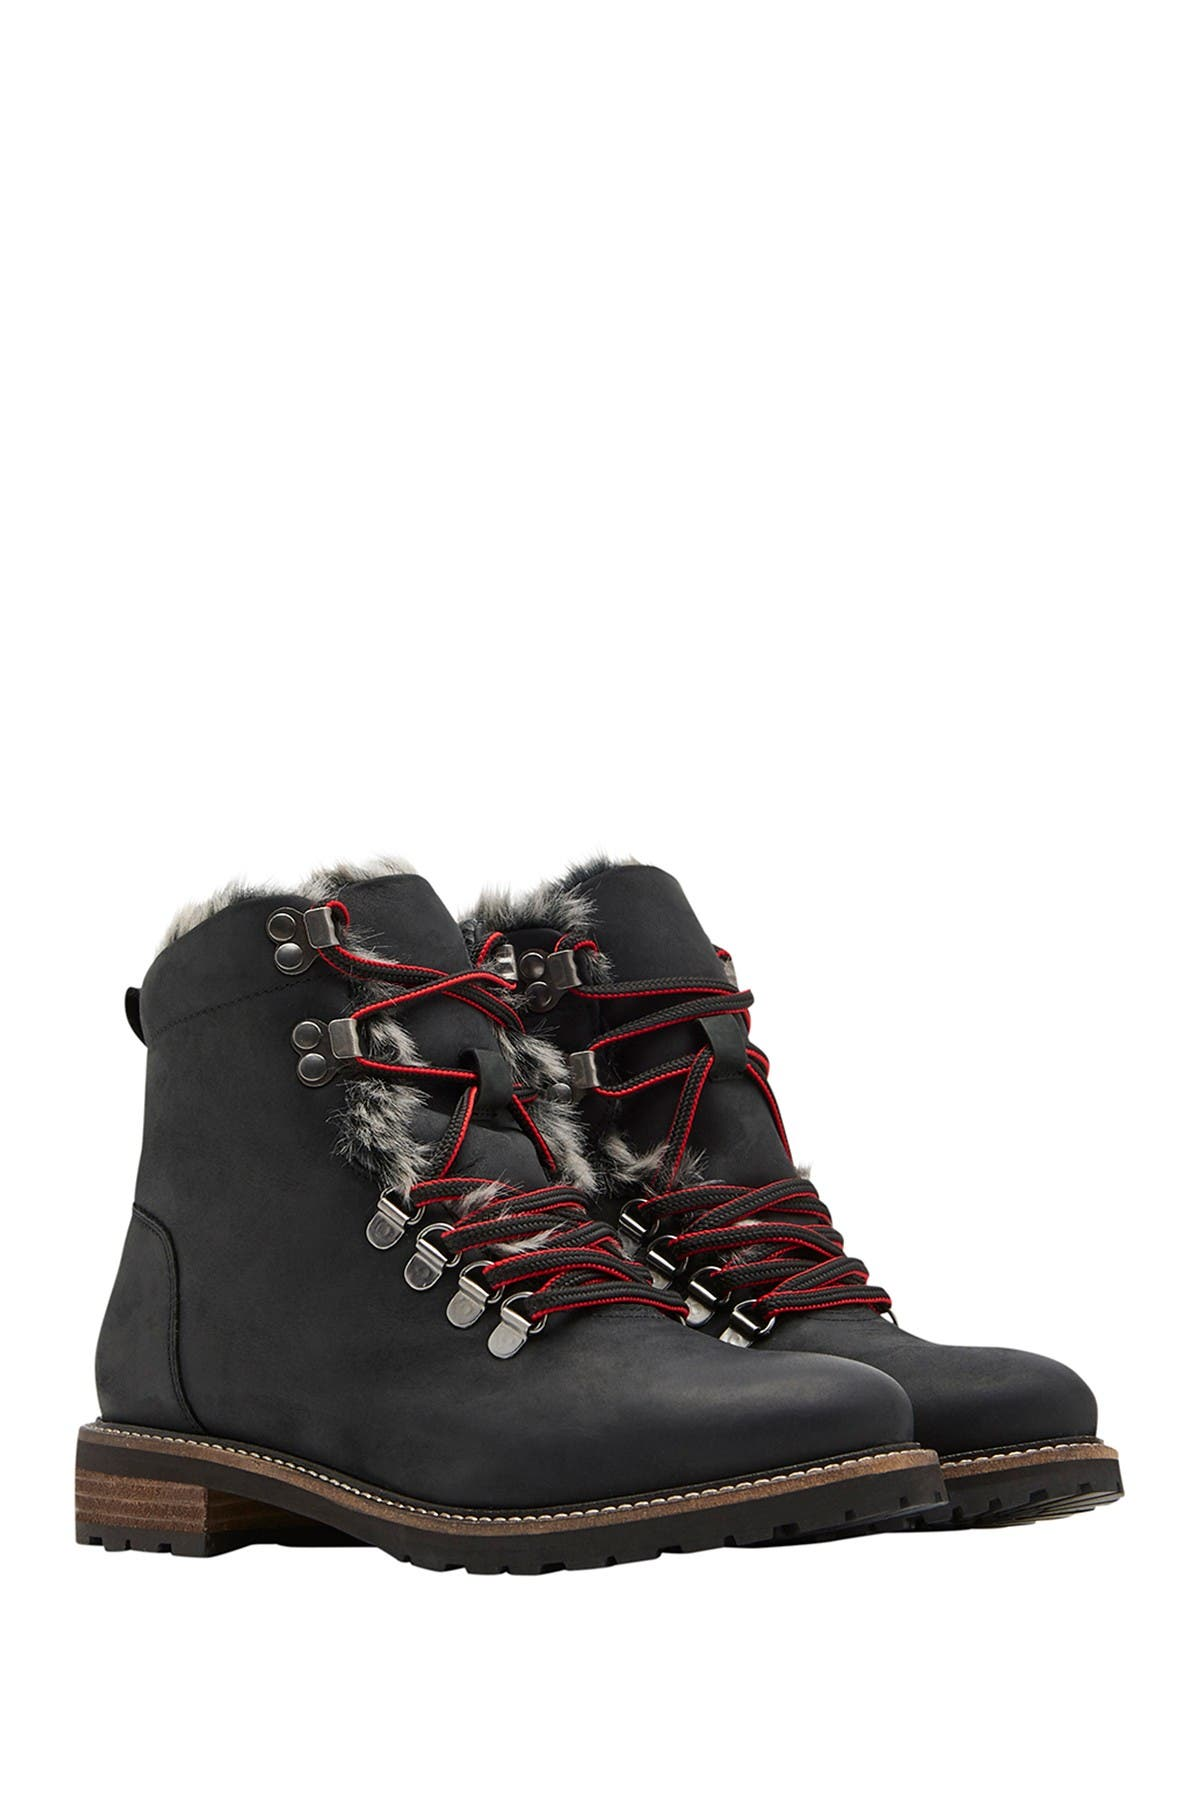 Image of Joules Ashwood Faux Fur Lined Hiker Boot